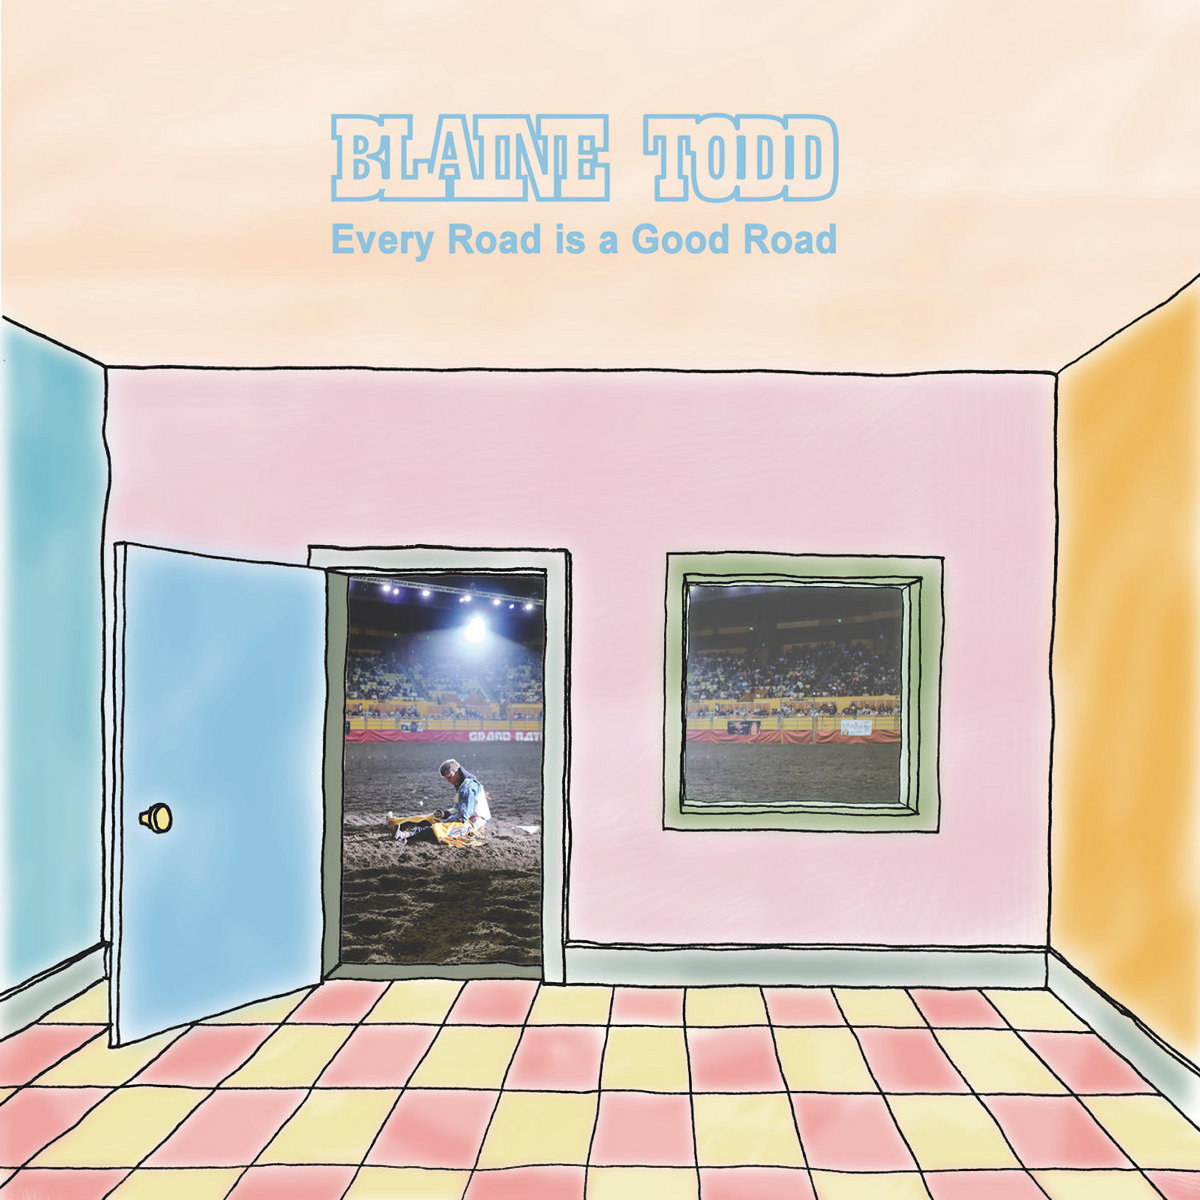 Every Road is a Good Road | Blaine Todd